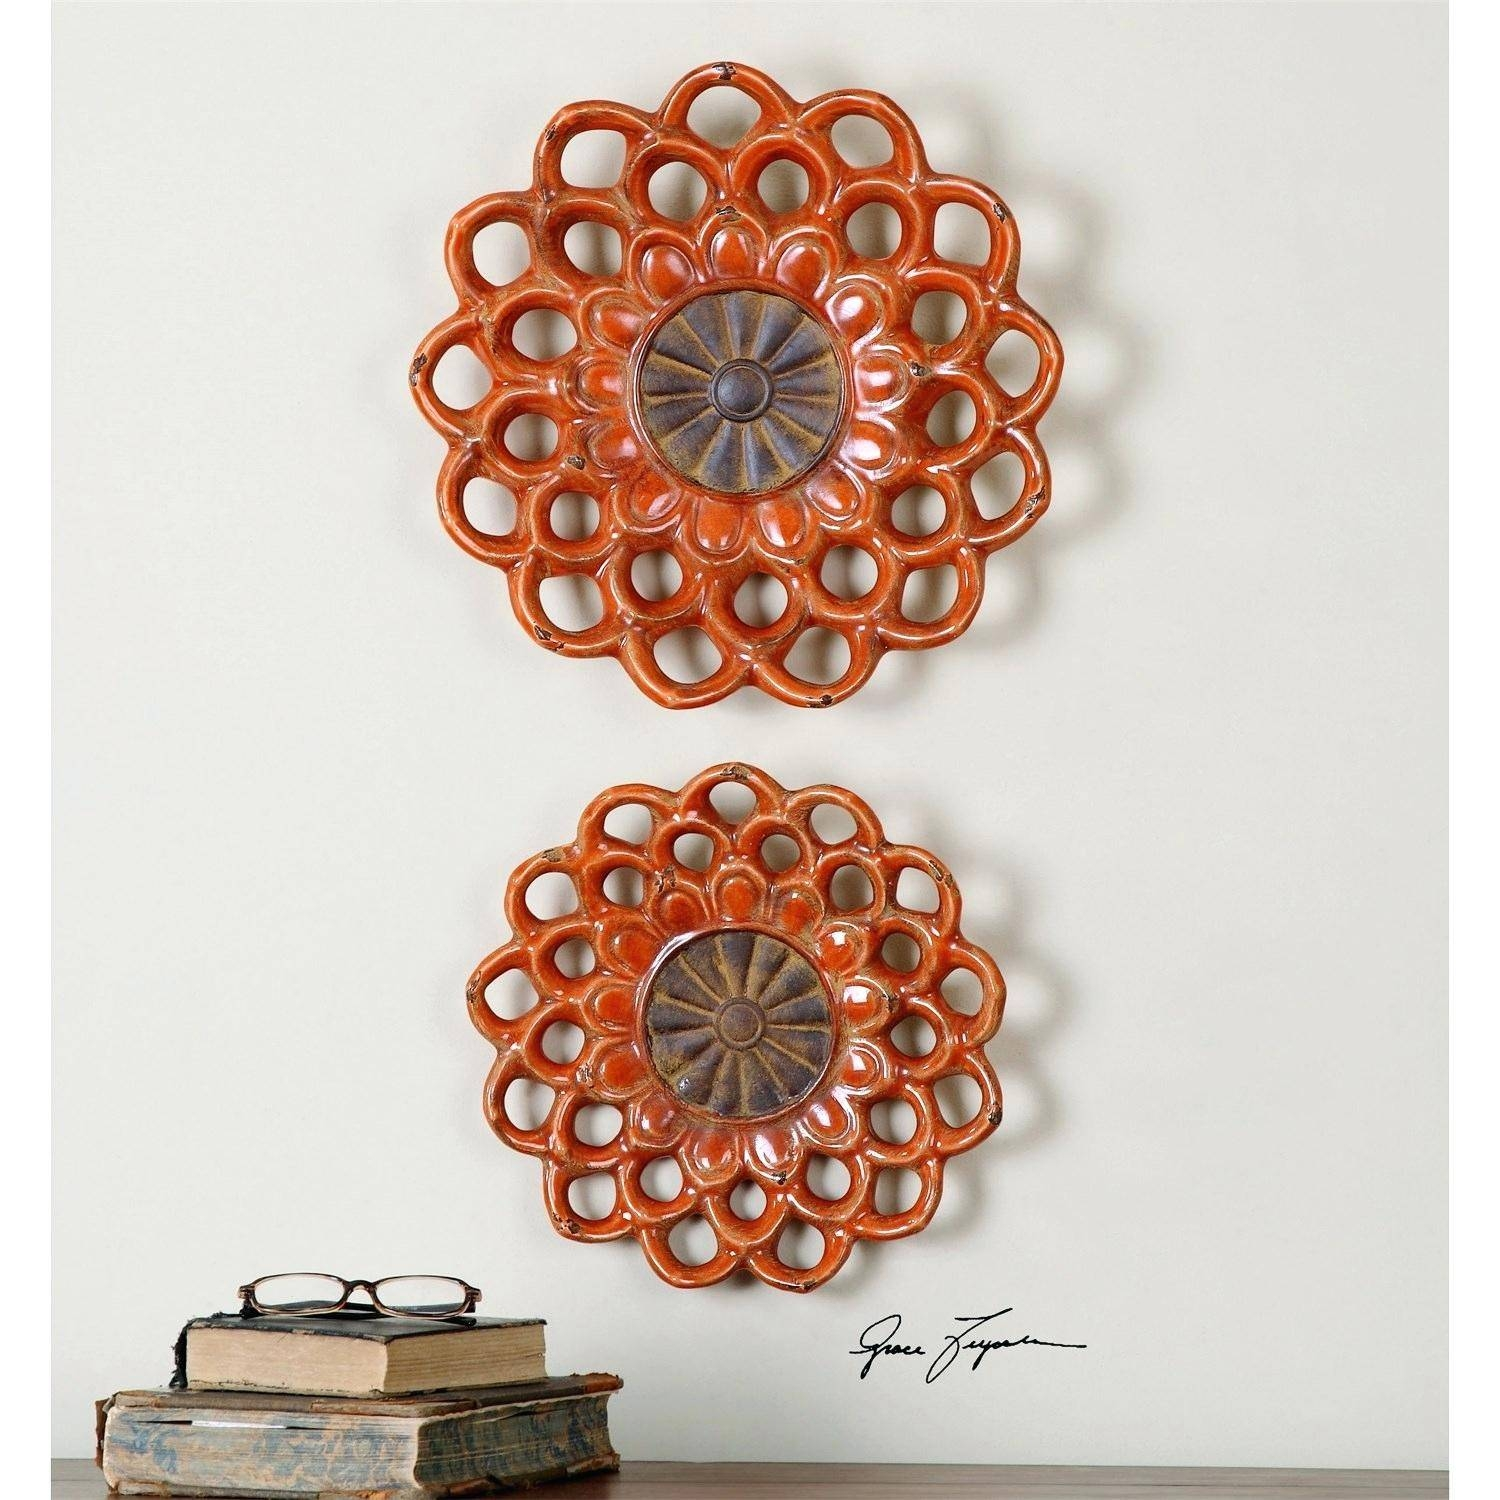 Wall Decor : 91 Wall Decor Amazing Ceramic Wall Hanging Art In Most Popular Large Ceramic Wall Art (View 22 of 25)